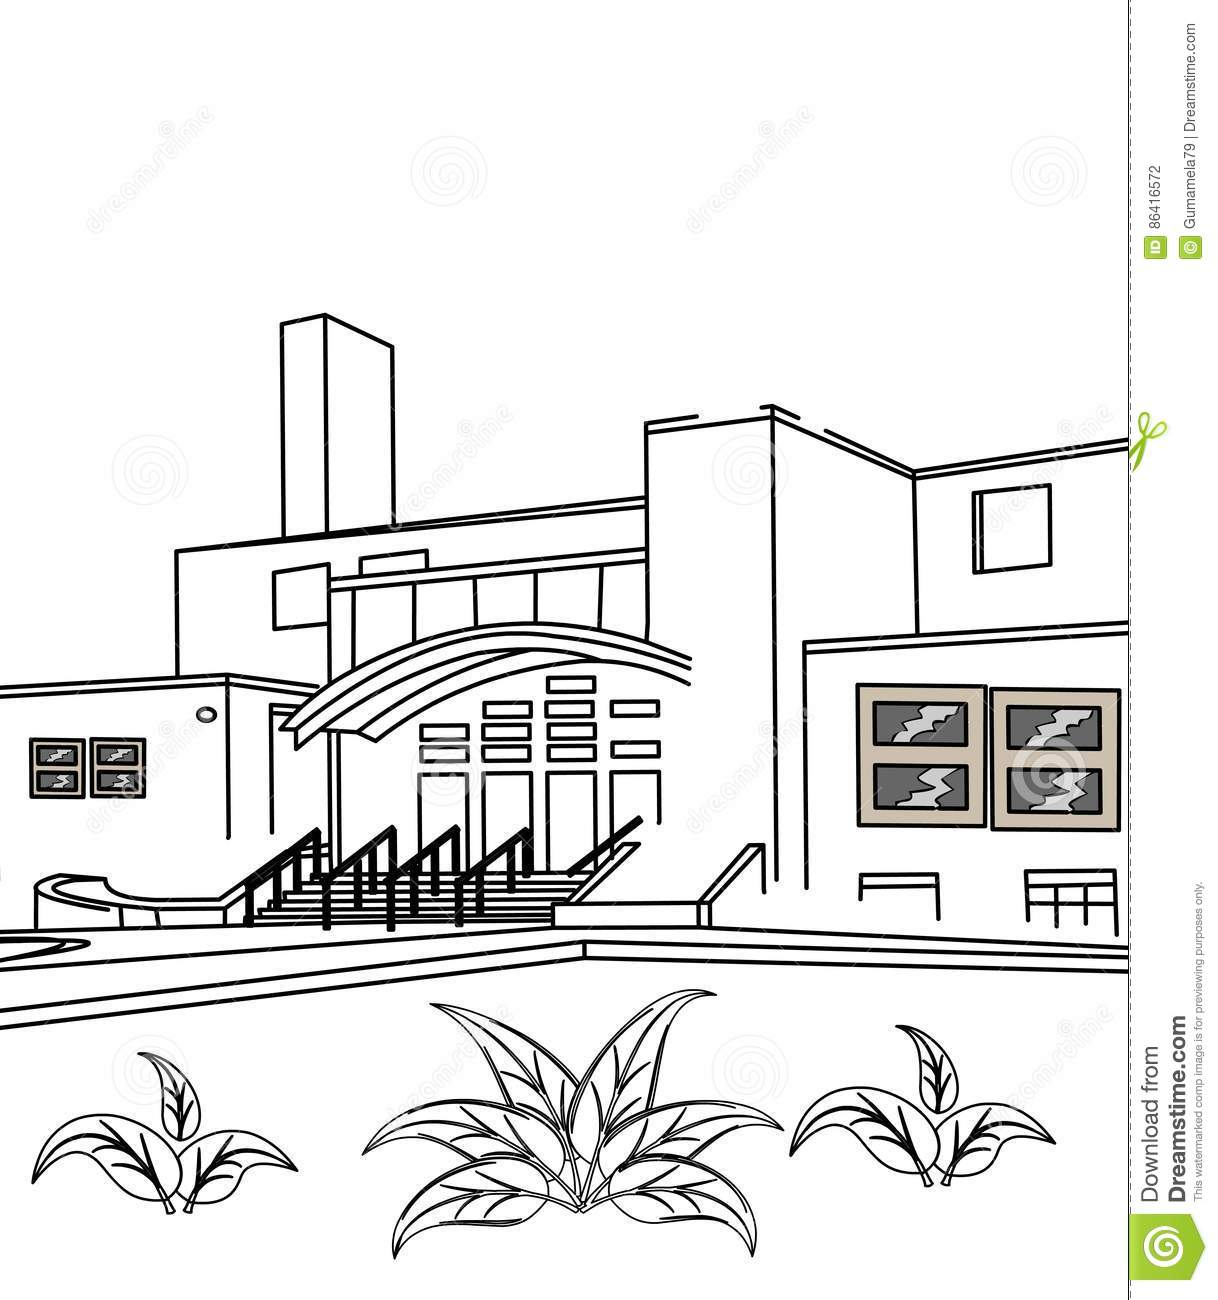 click the lipstick building coloring pages to view printable version ...